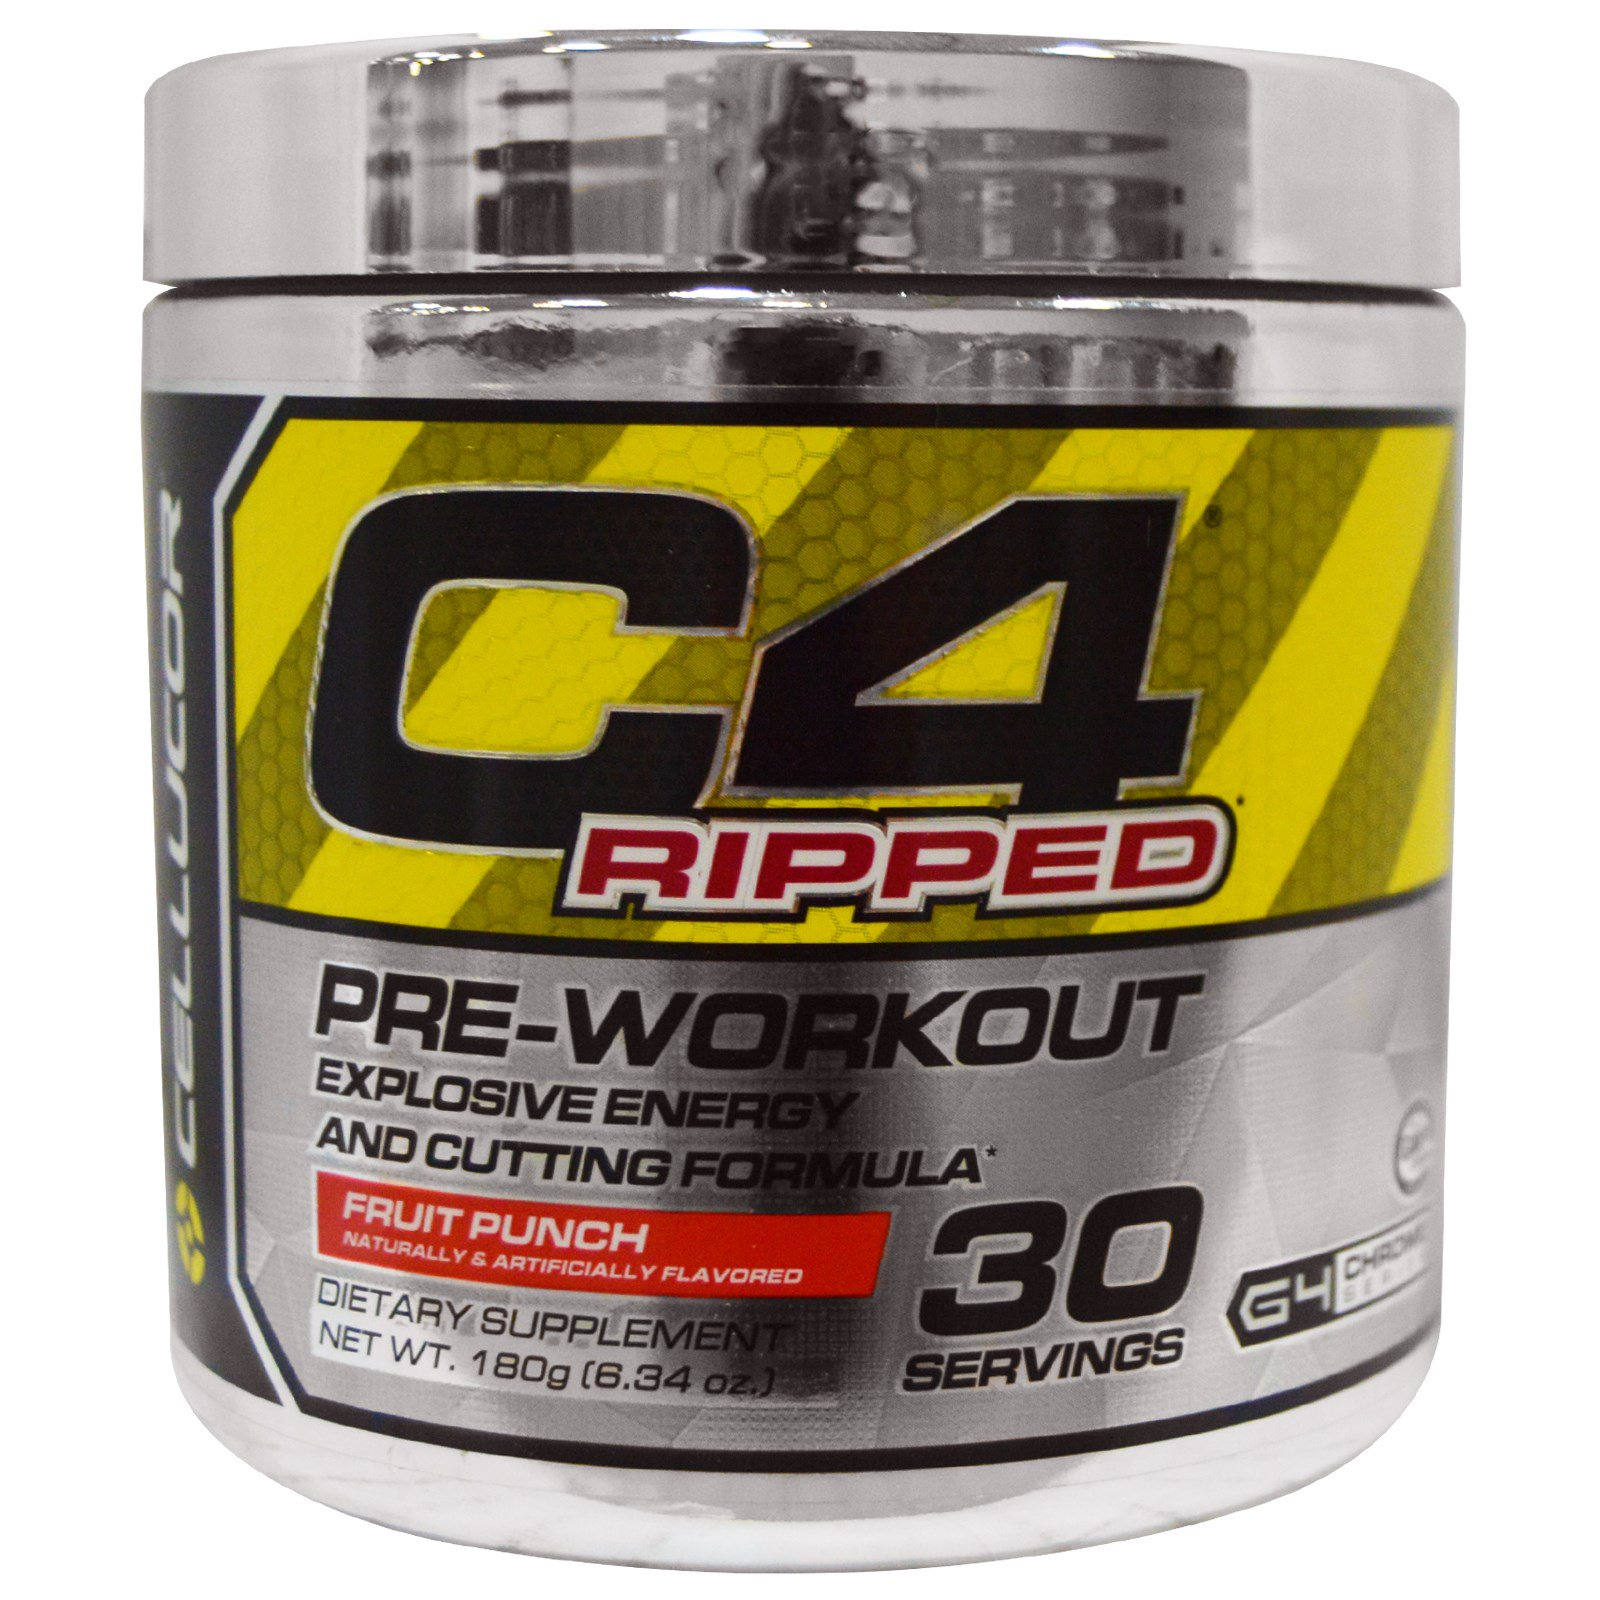 Cellucor, C4 Ripped, Pre-Workout, Fruit Punch, 6.34 oz (180 g) - iHerb.com